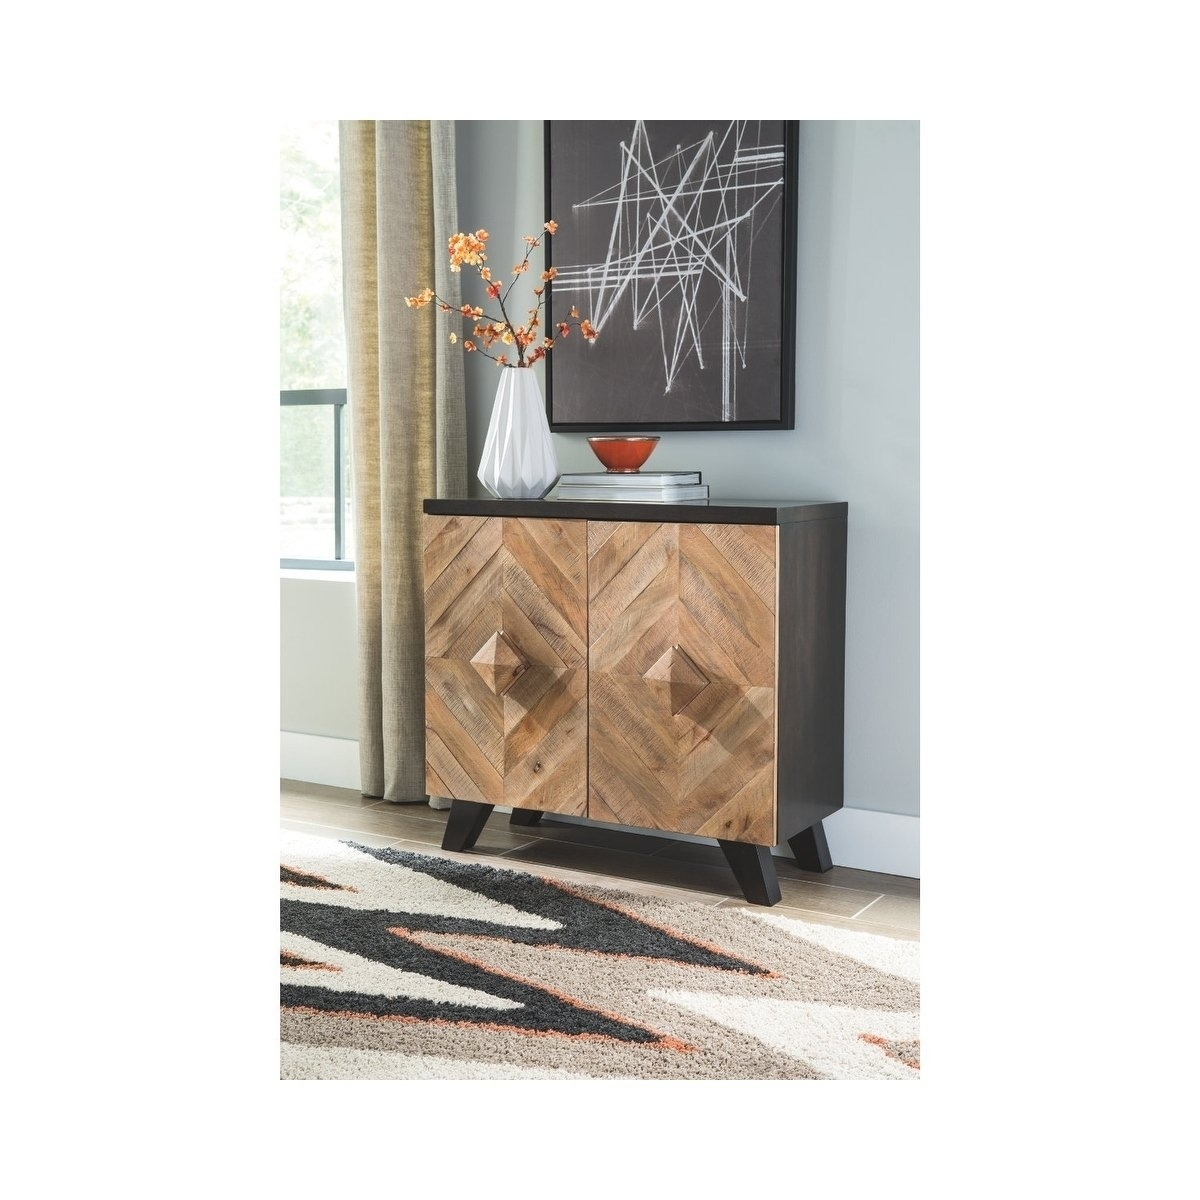 Buy Natural Finish, Entryway Table Online At Overstock | Our within Mandara 3-Drawer 2-Door Sideboards (Image 7 of 30)